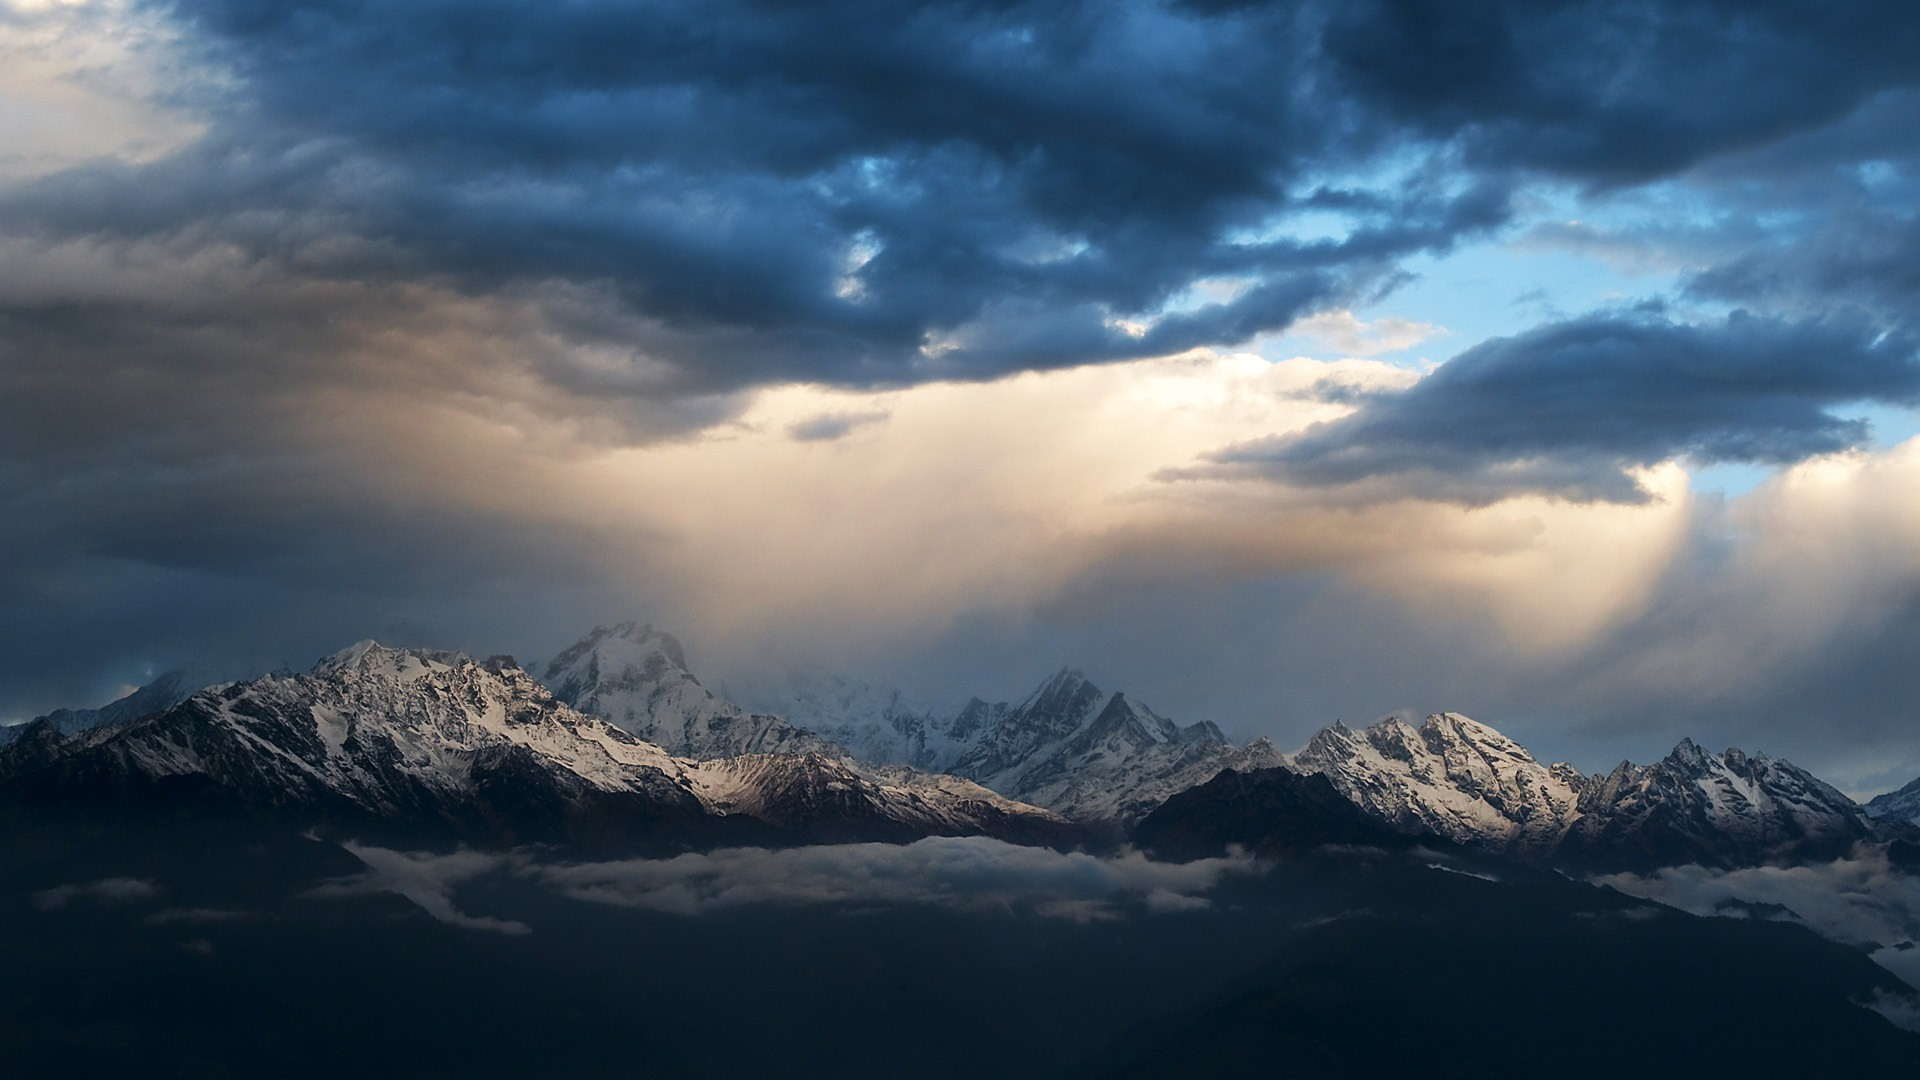 Himalayas Wallpaper; Himalayas Wallpaper; Himalayas Wallpaper ...